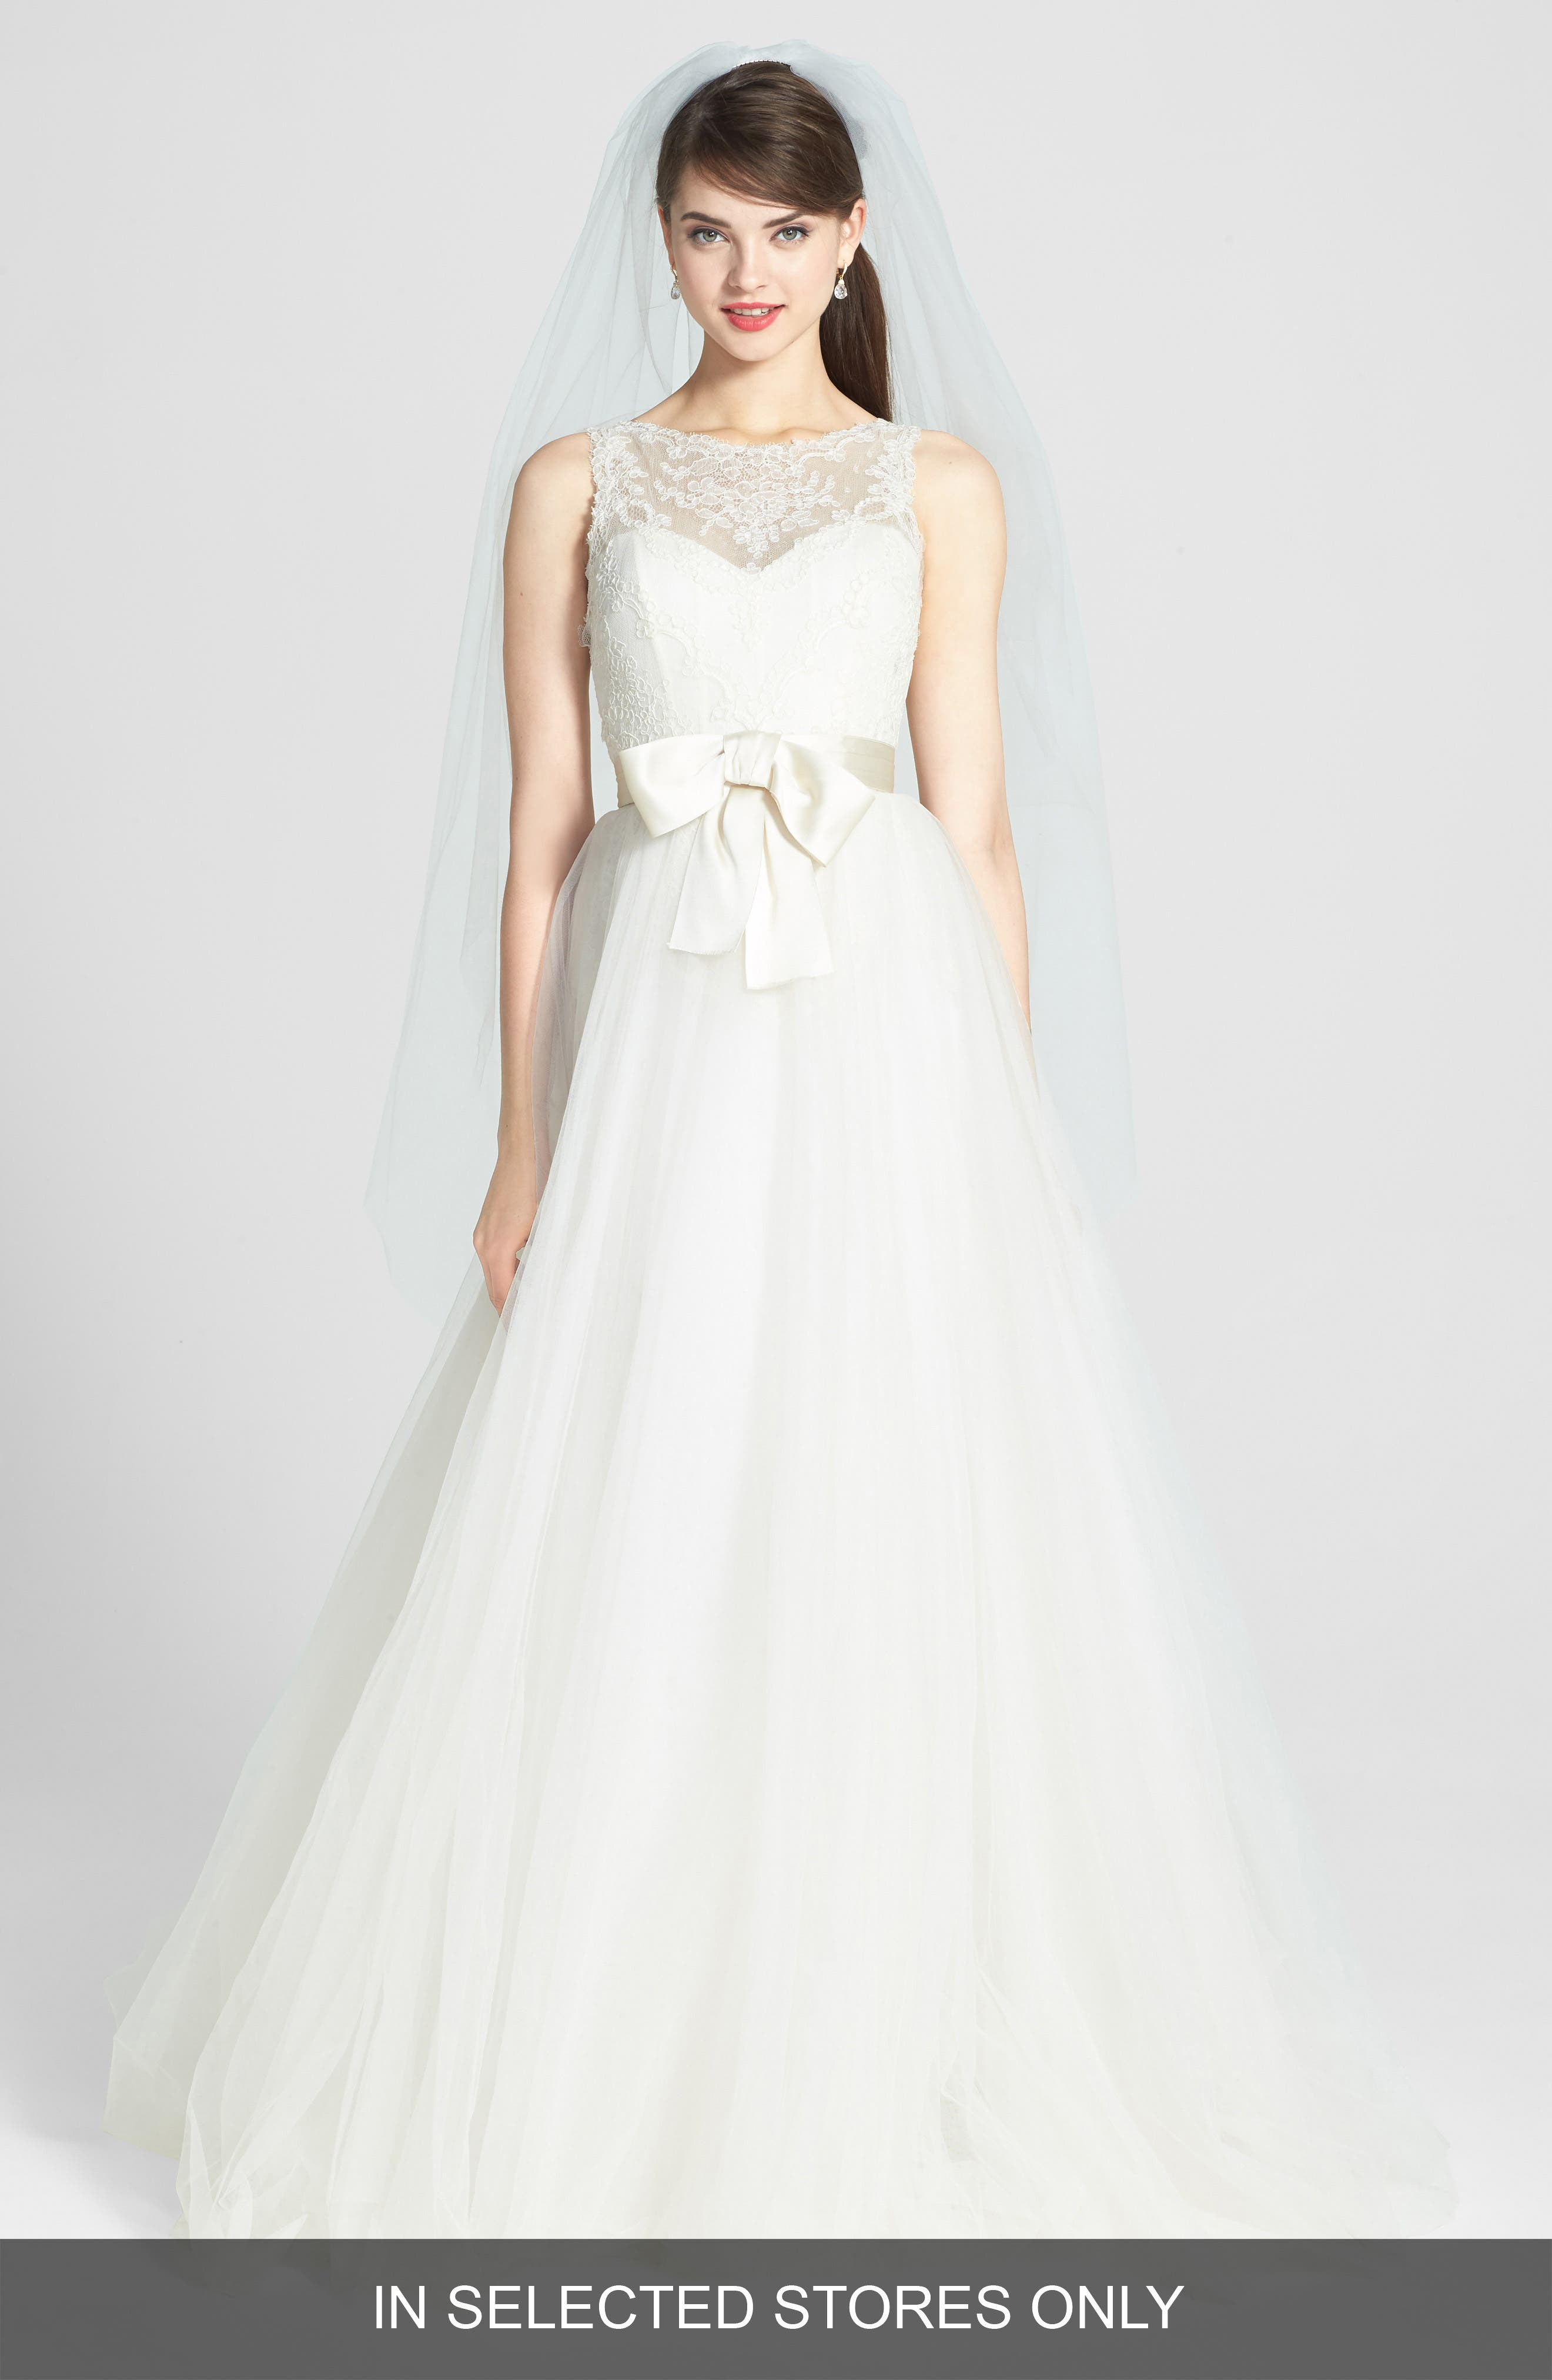 Main Image - Amsale 'Quinn' French Lace Illusion Bodice Tulle Wedding Dress (In Stores Only)